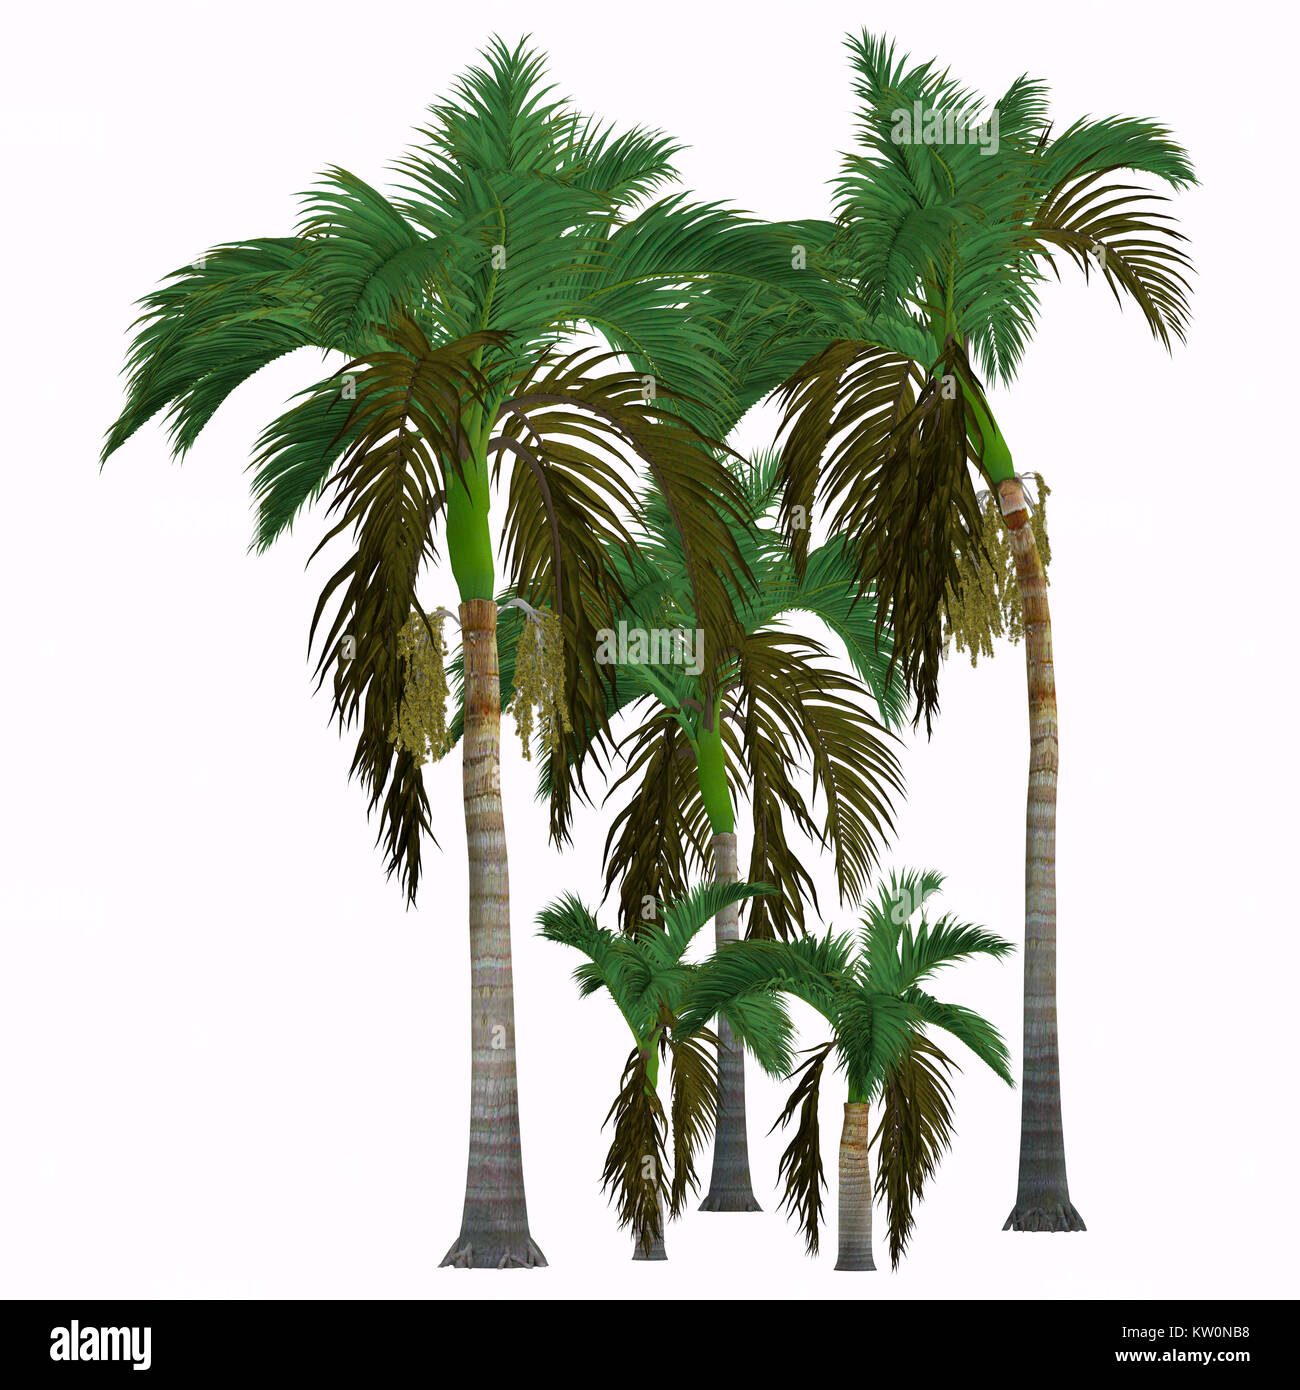 Alexander King Palm Trees - This tropical tree grows in the rainforest and is a palm native of Queensland, Australia. - Stock Image